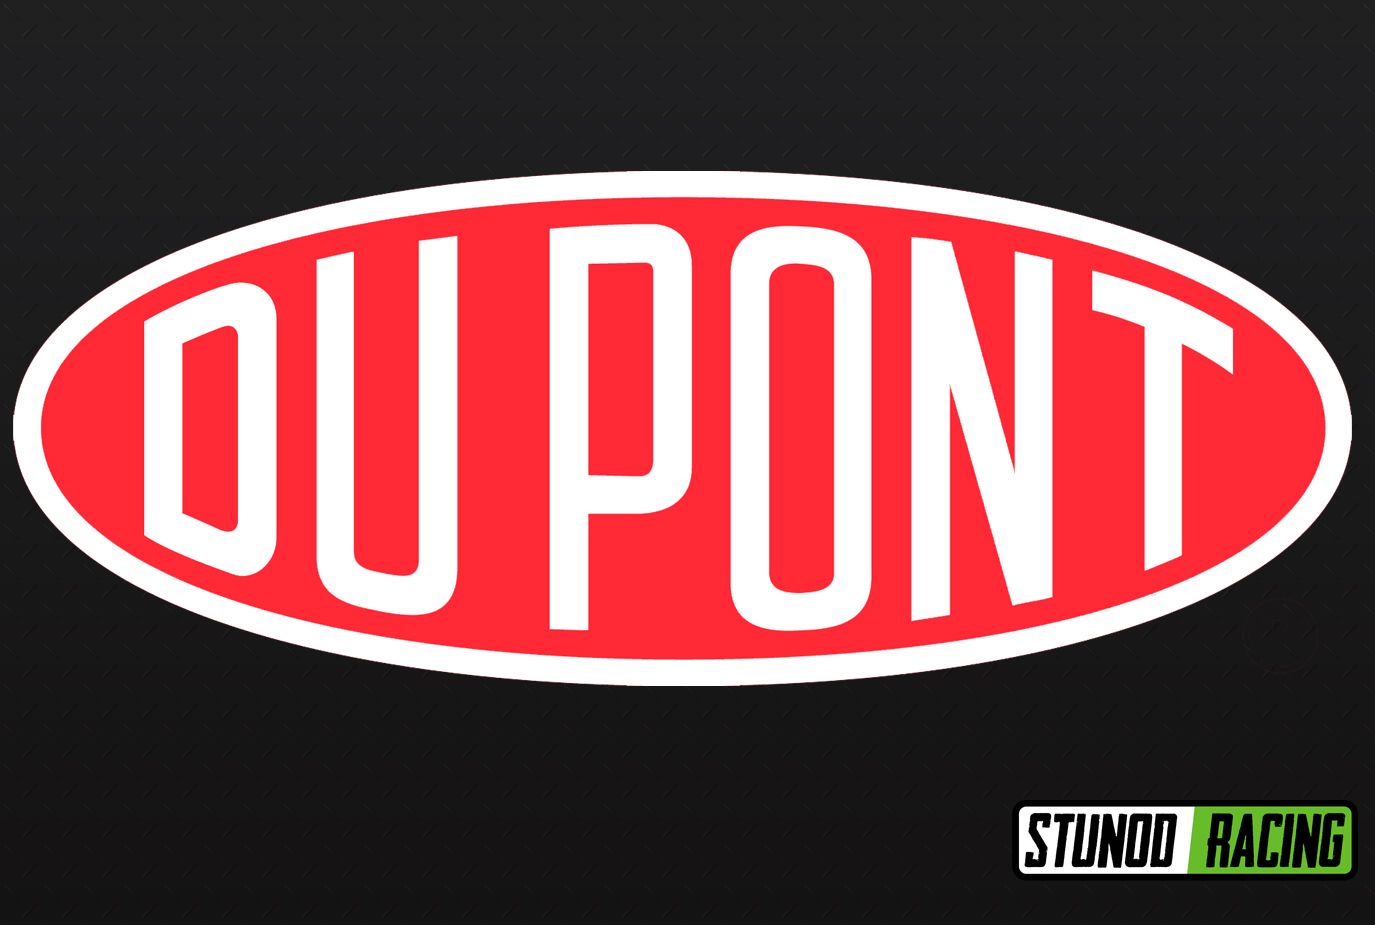 StunodRacing-DuPont-Logo.jpg